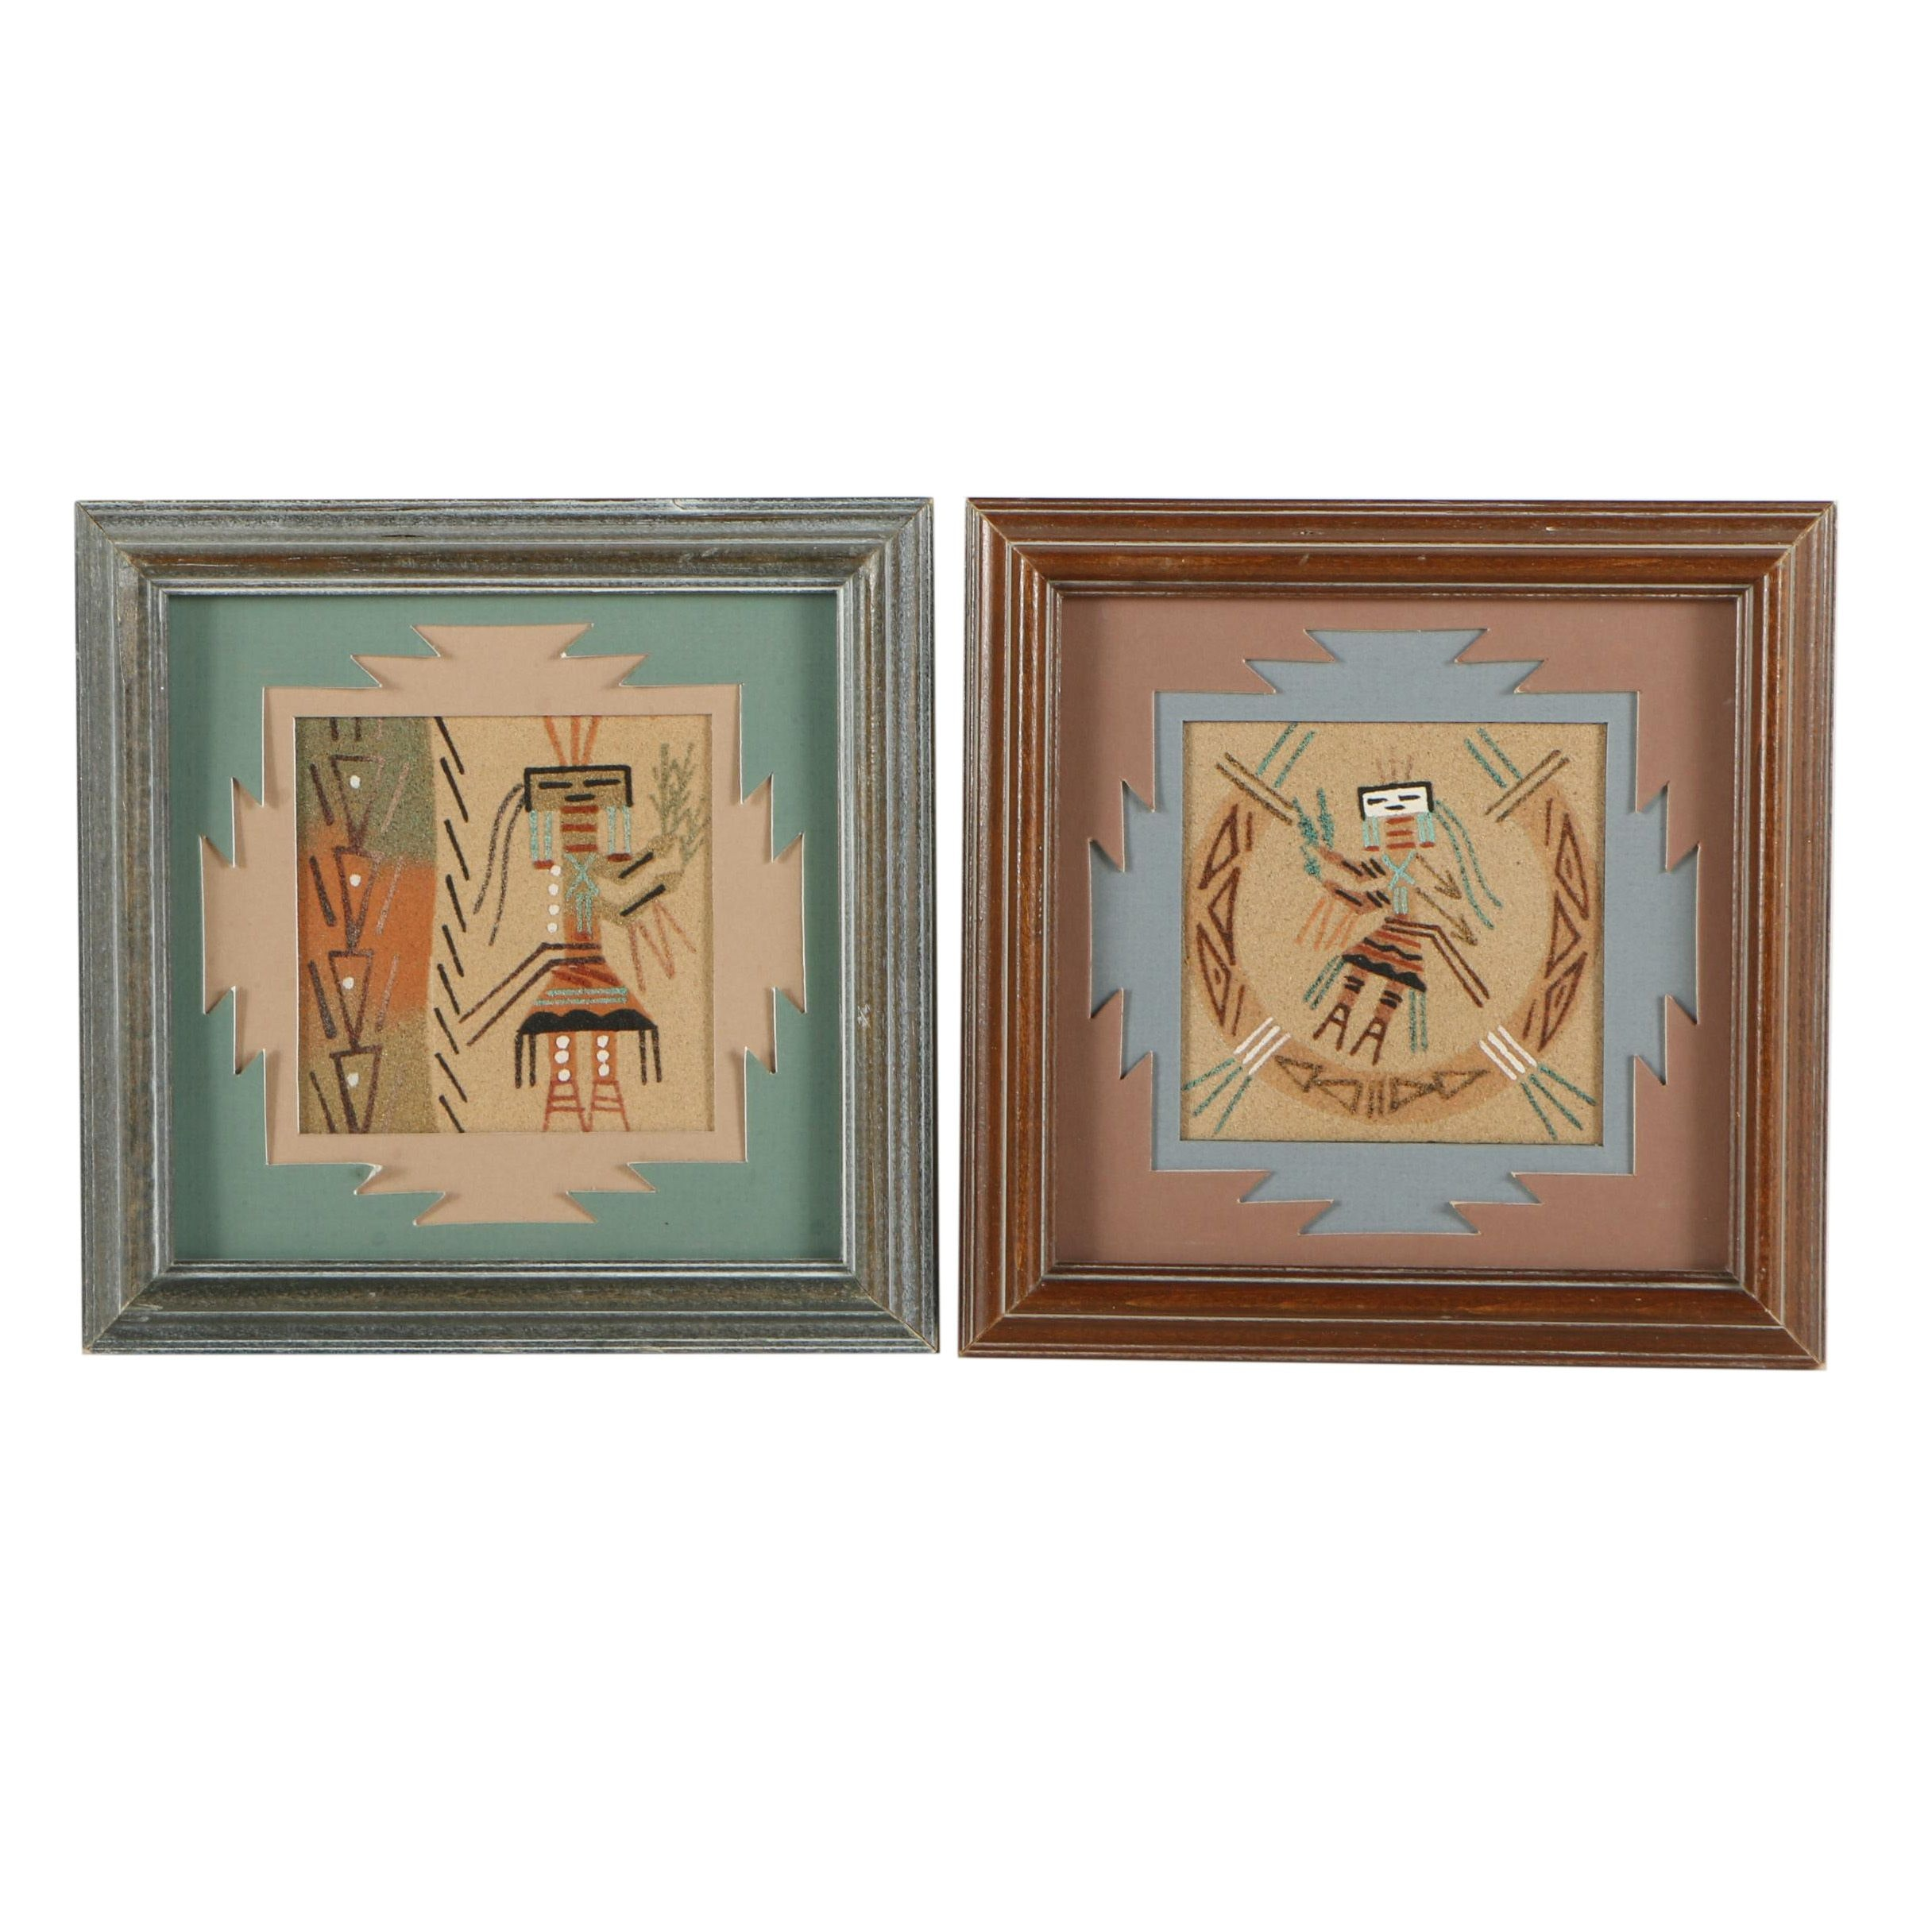 Pair of Native American-Style Sand Paintings on Panel